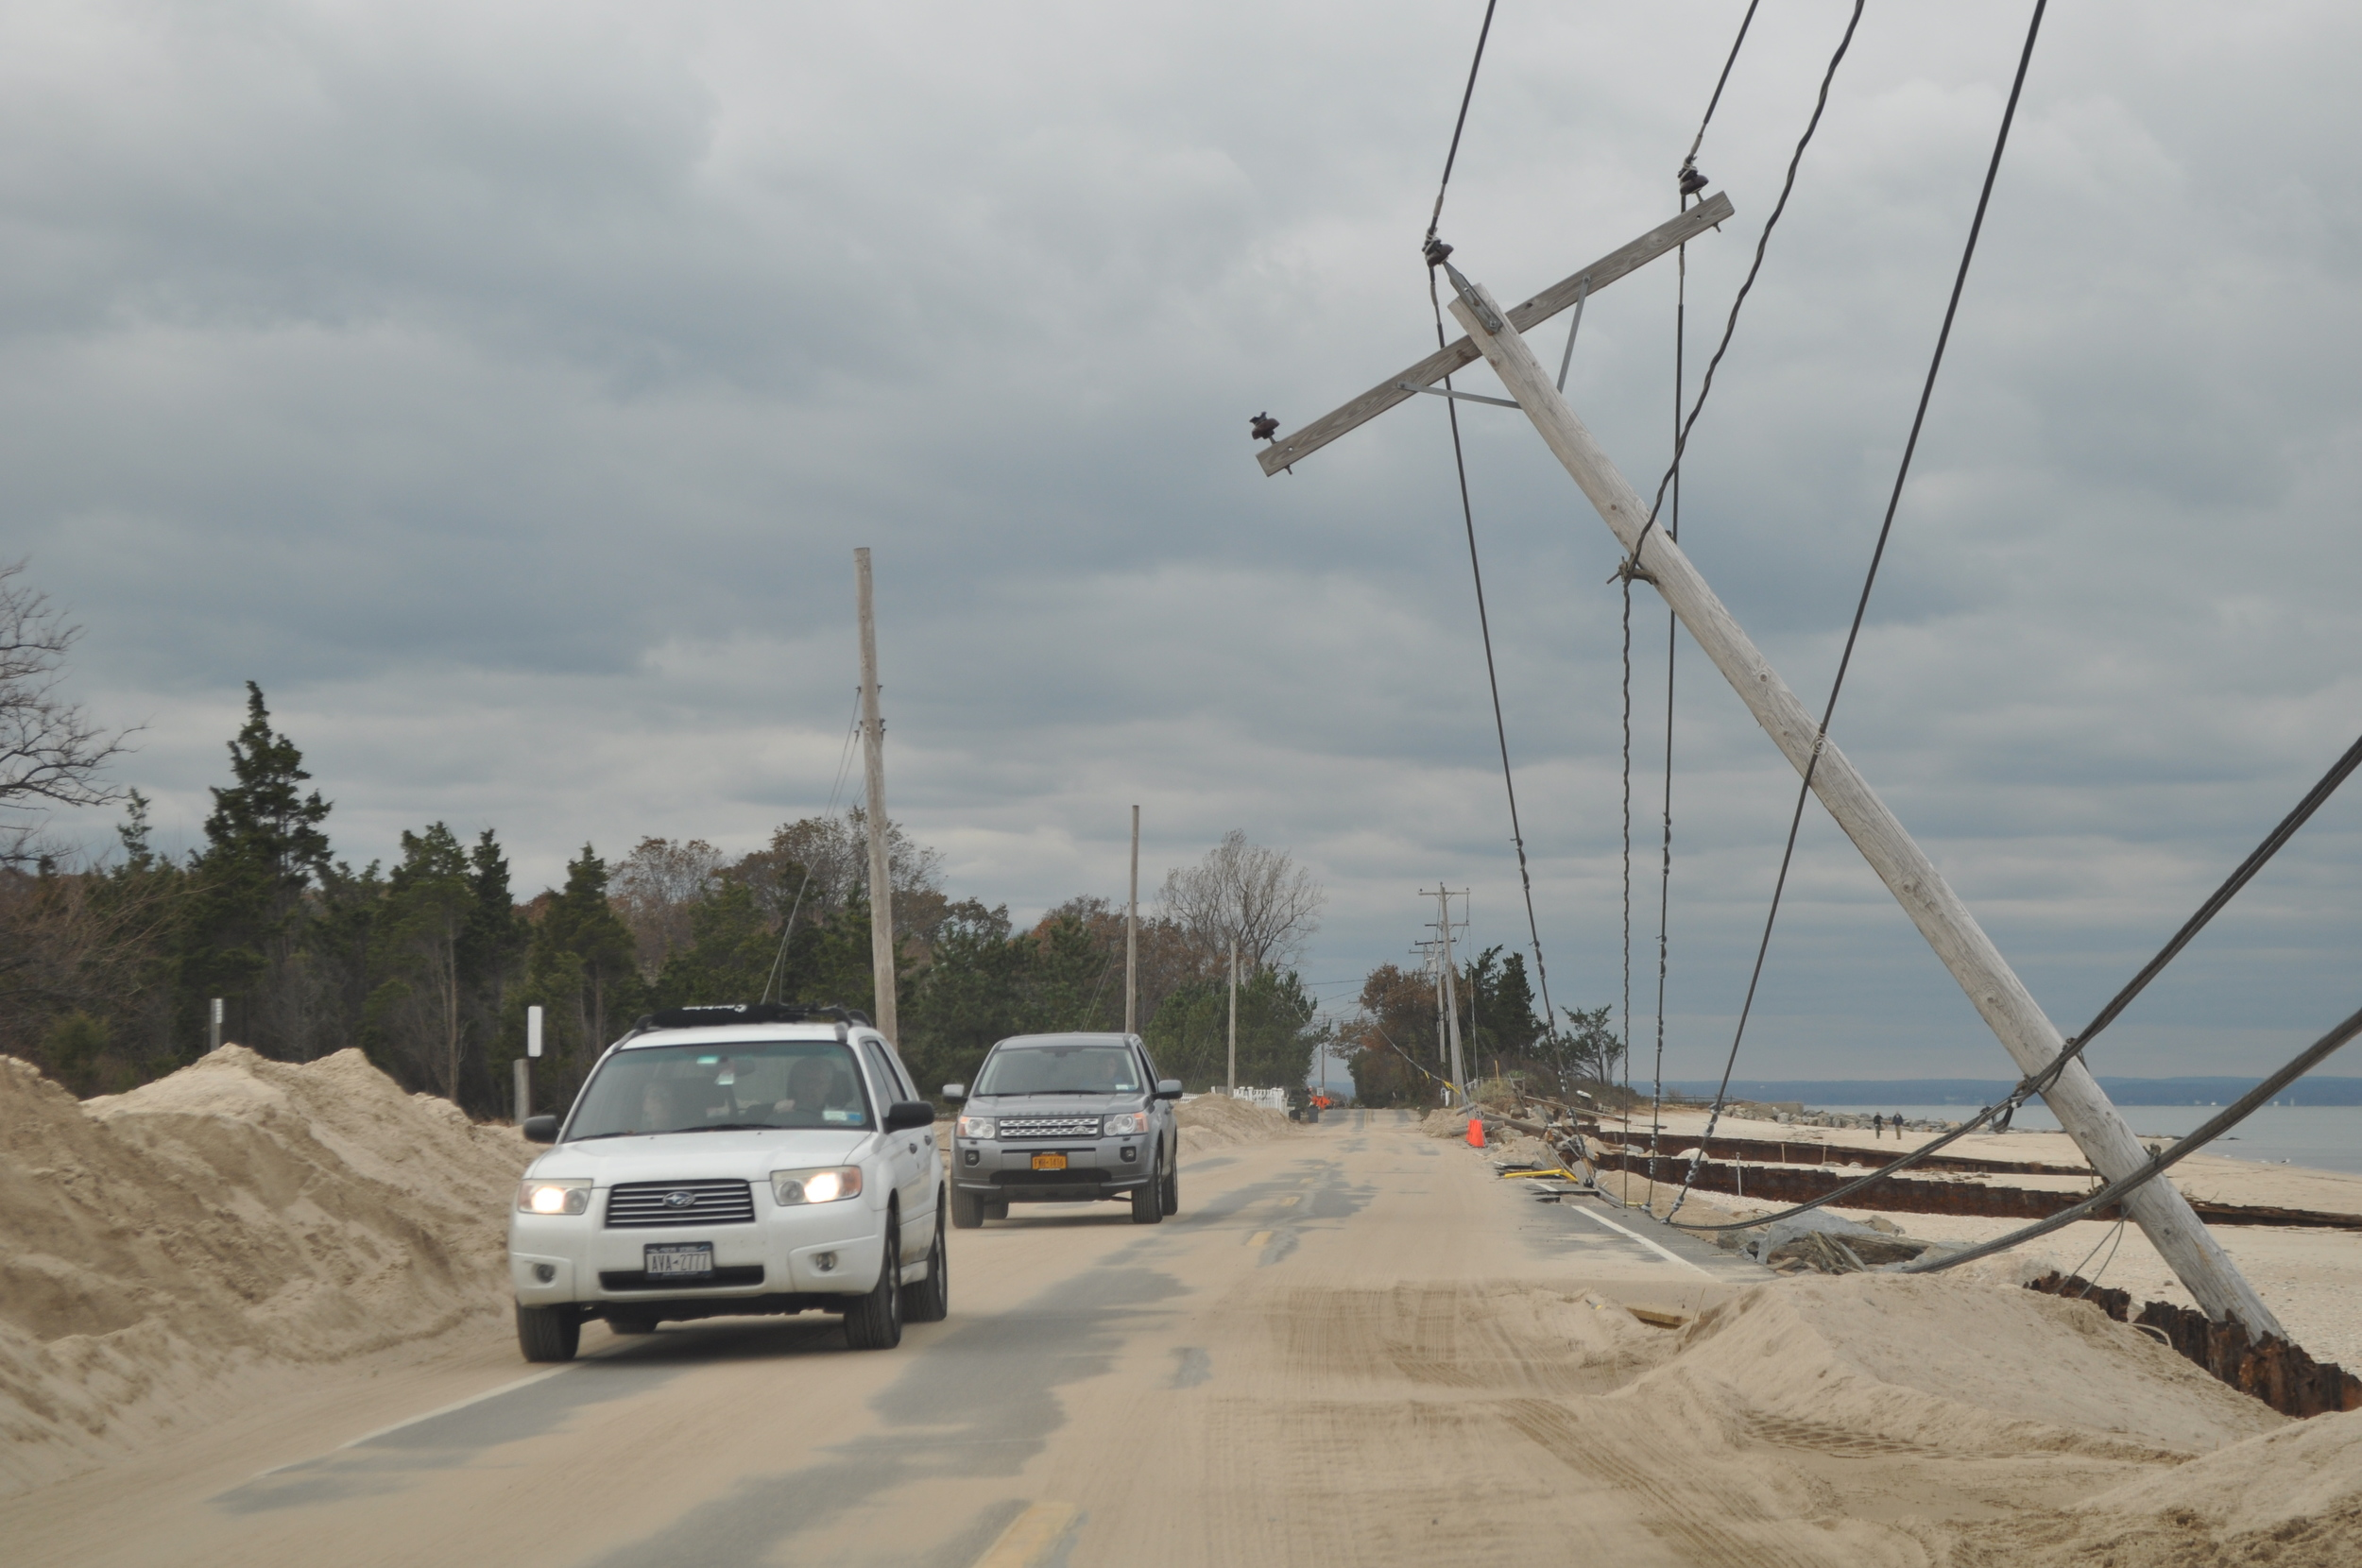 Asharoken Mayor Greg Letica wantsthe Army Corps of Engineers to back off on demands for public access in exchange for a beach-nourishment project. Pictured, the beach spills onto Asharoken Avenue after Superstorm Sandy.